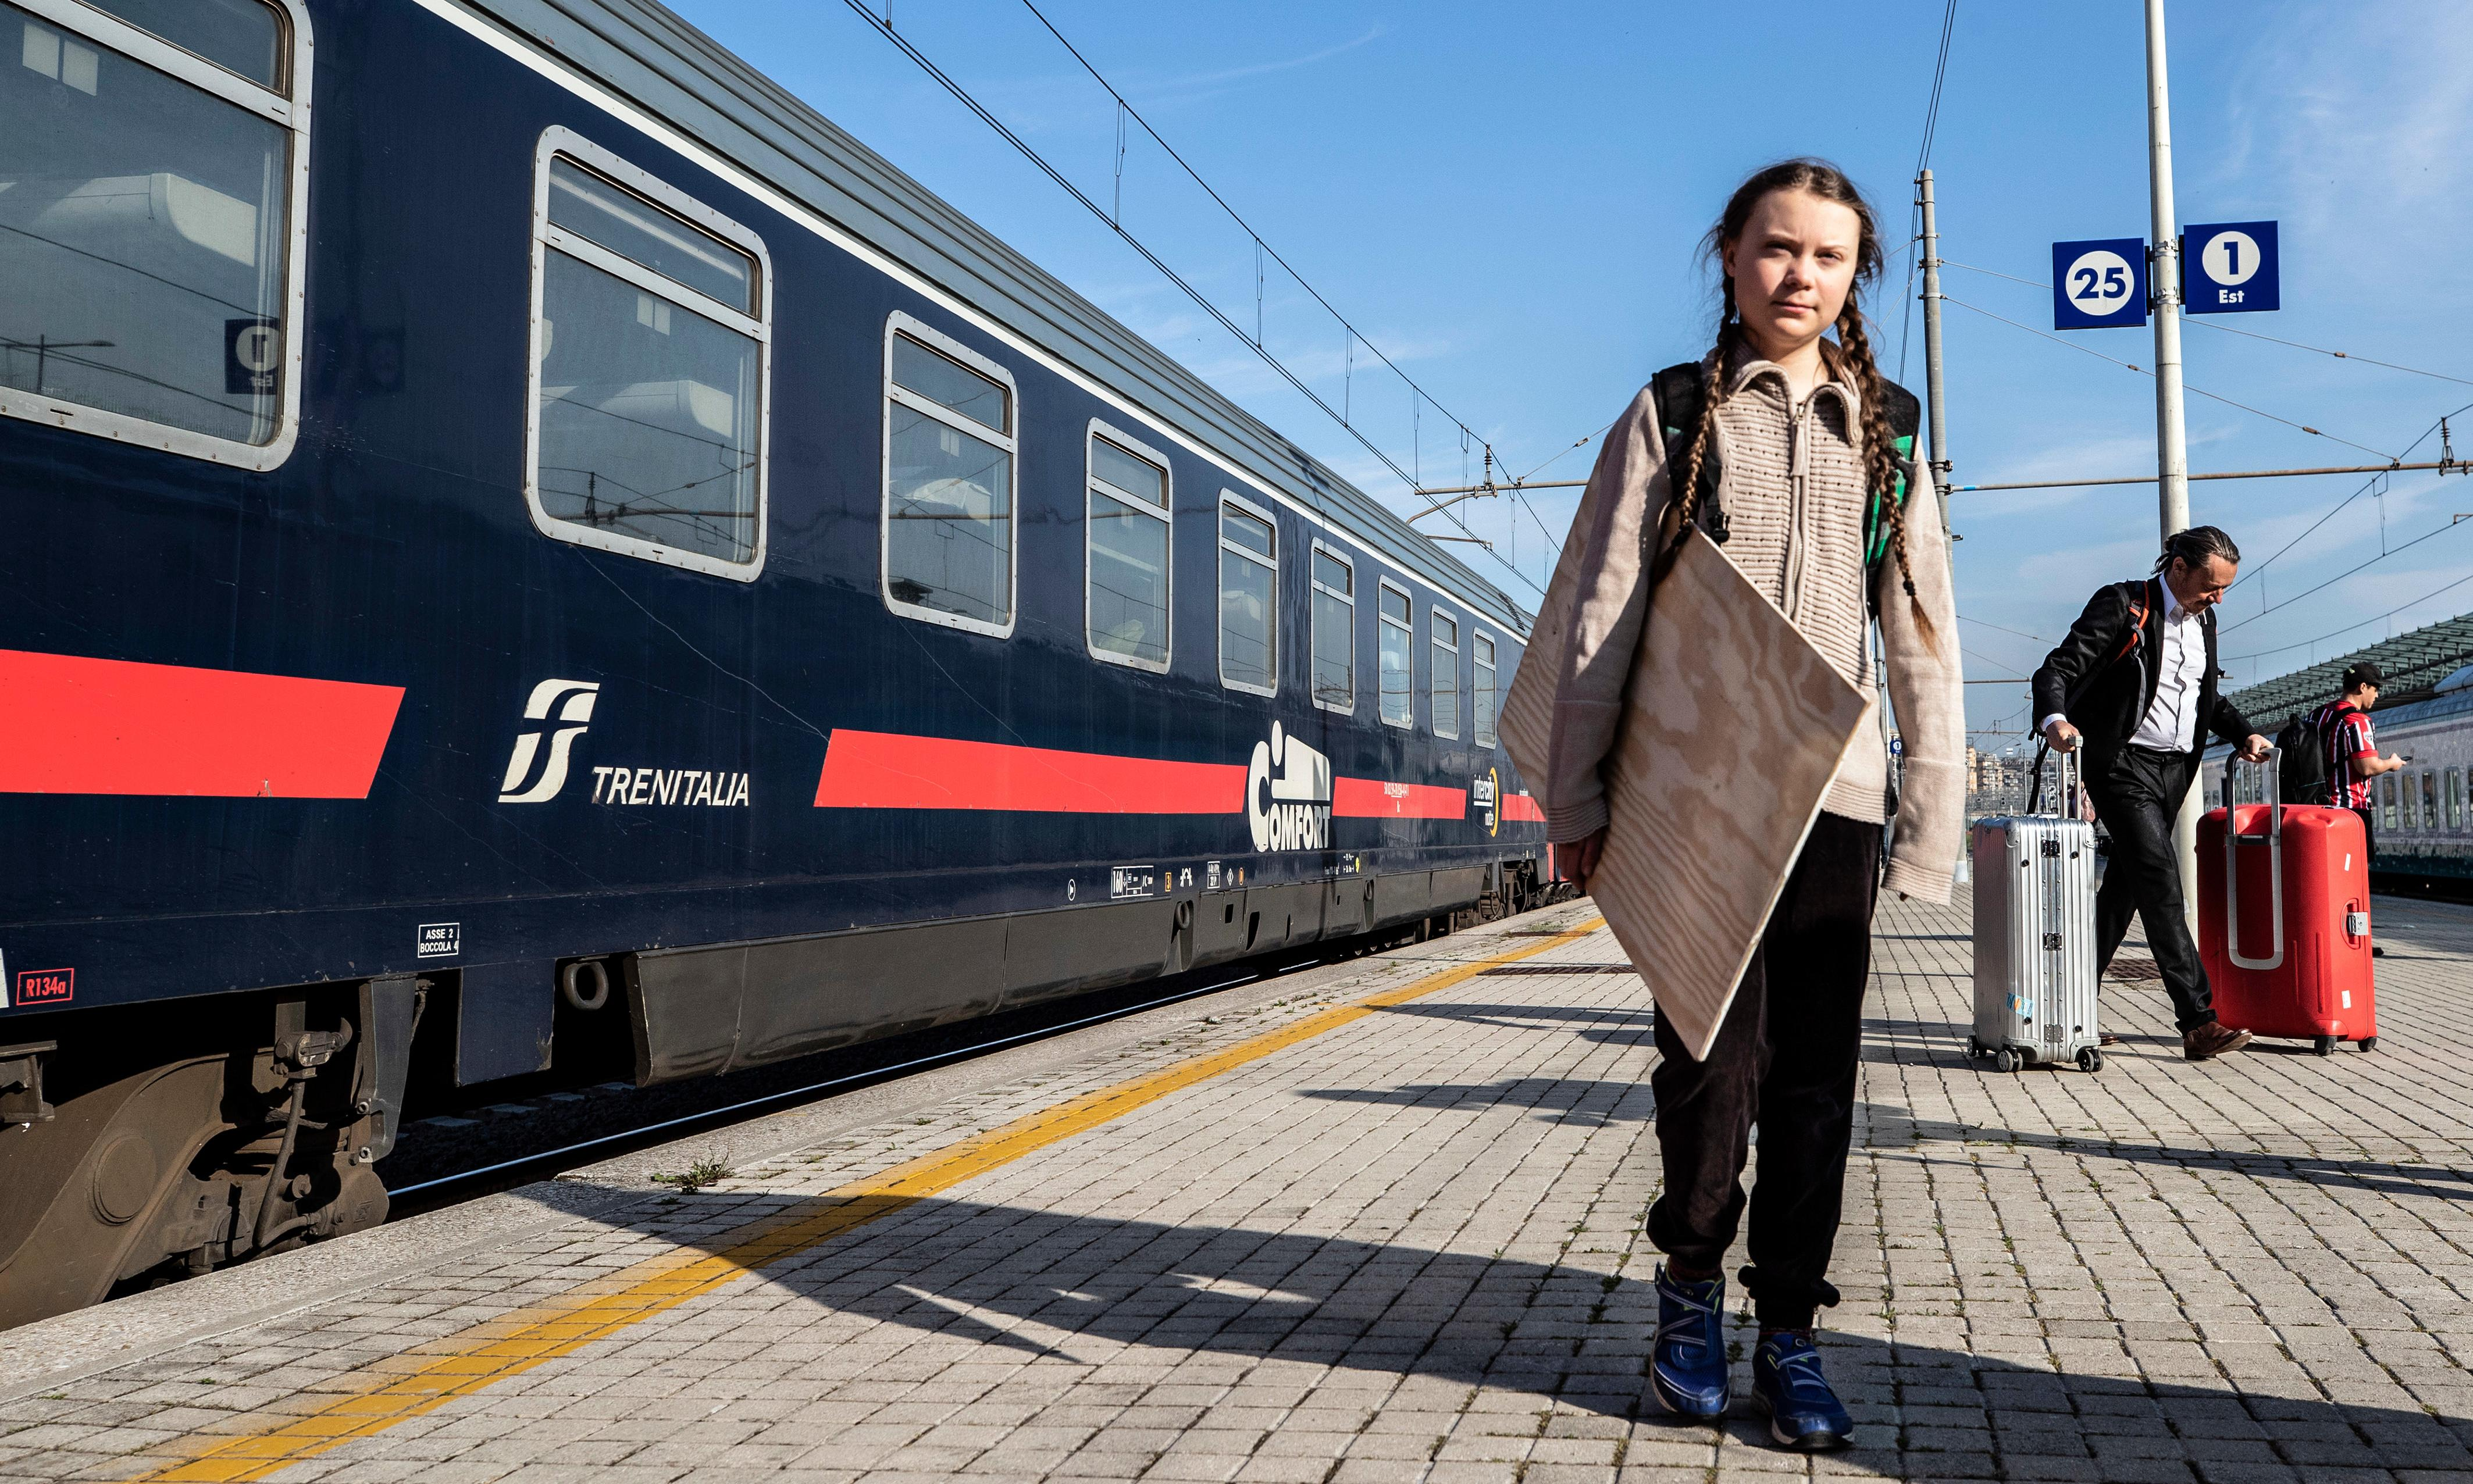 Greta Thunberg's train journey through Europe highlights no-fly movement